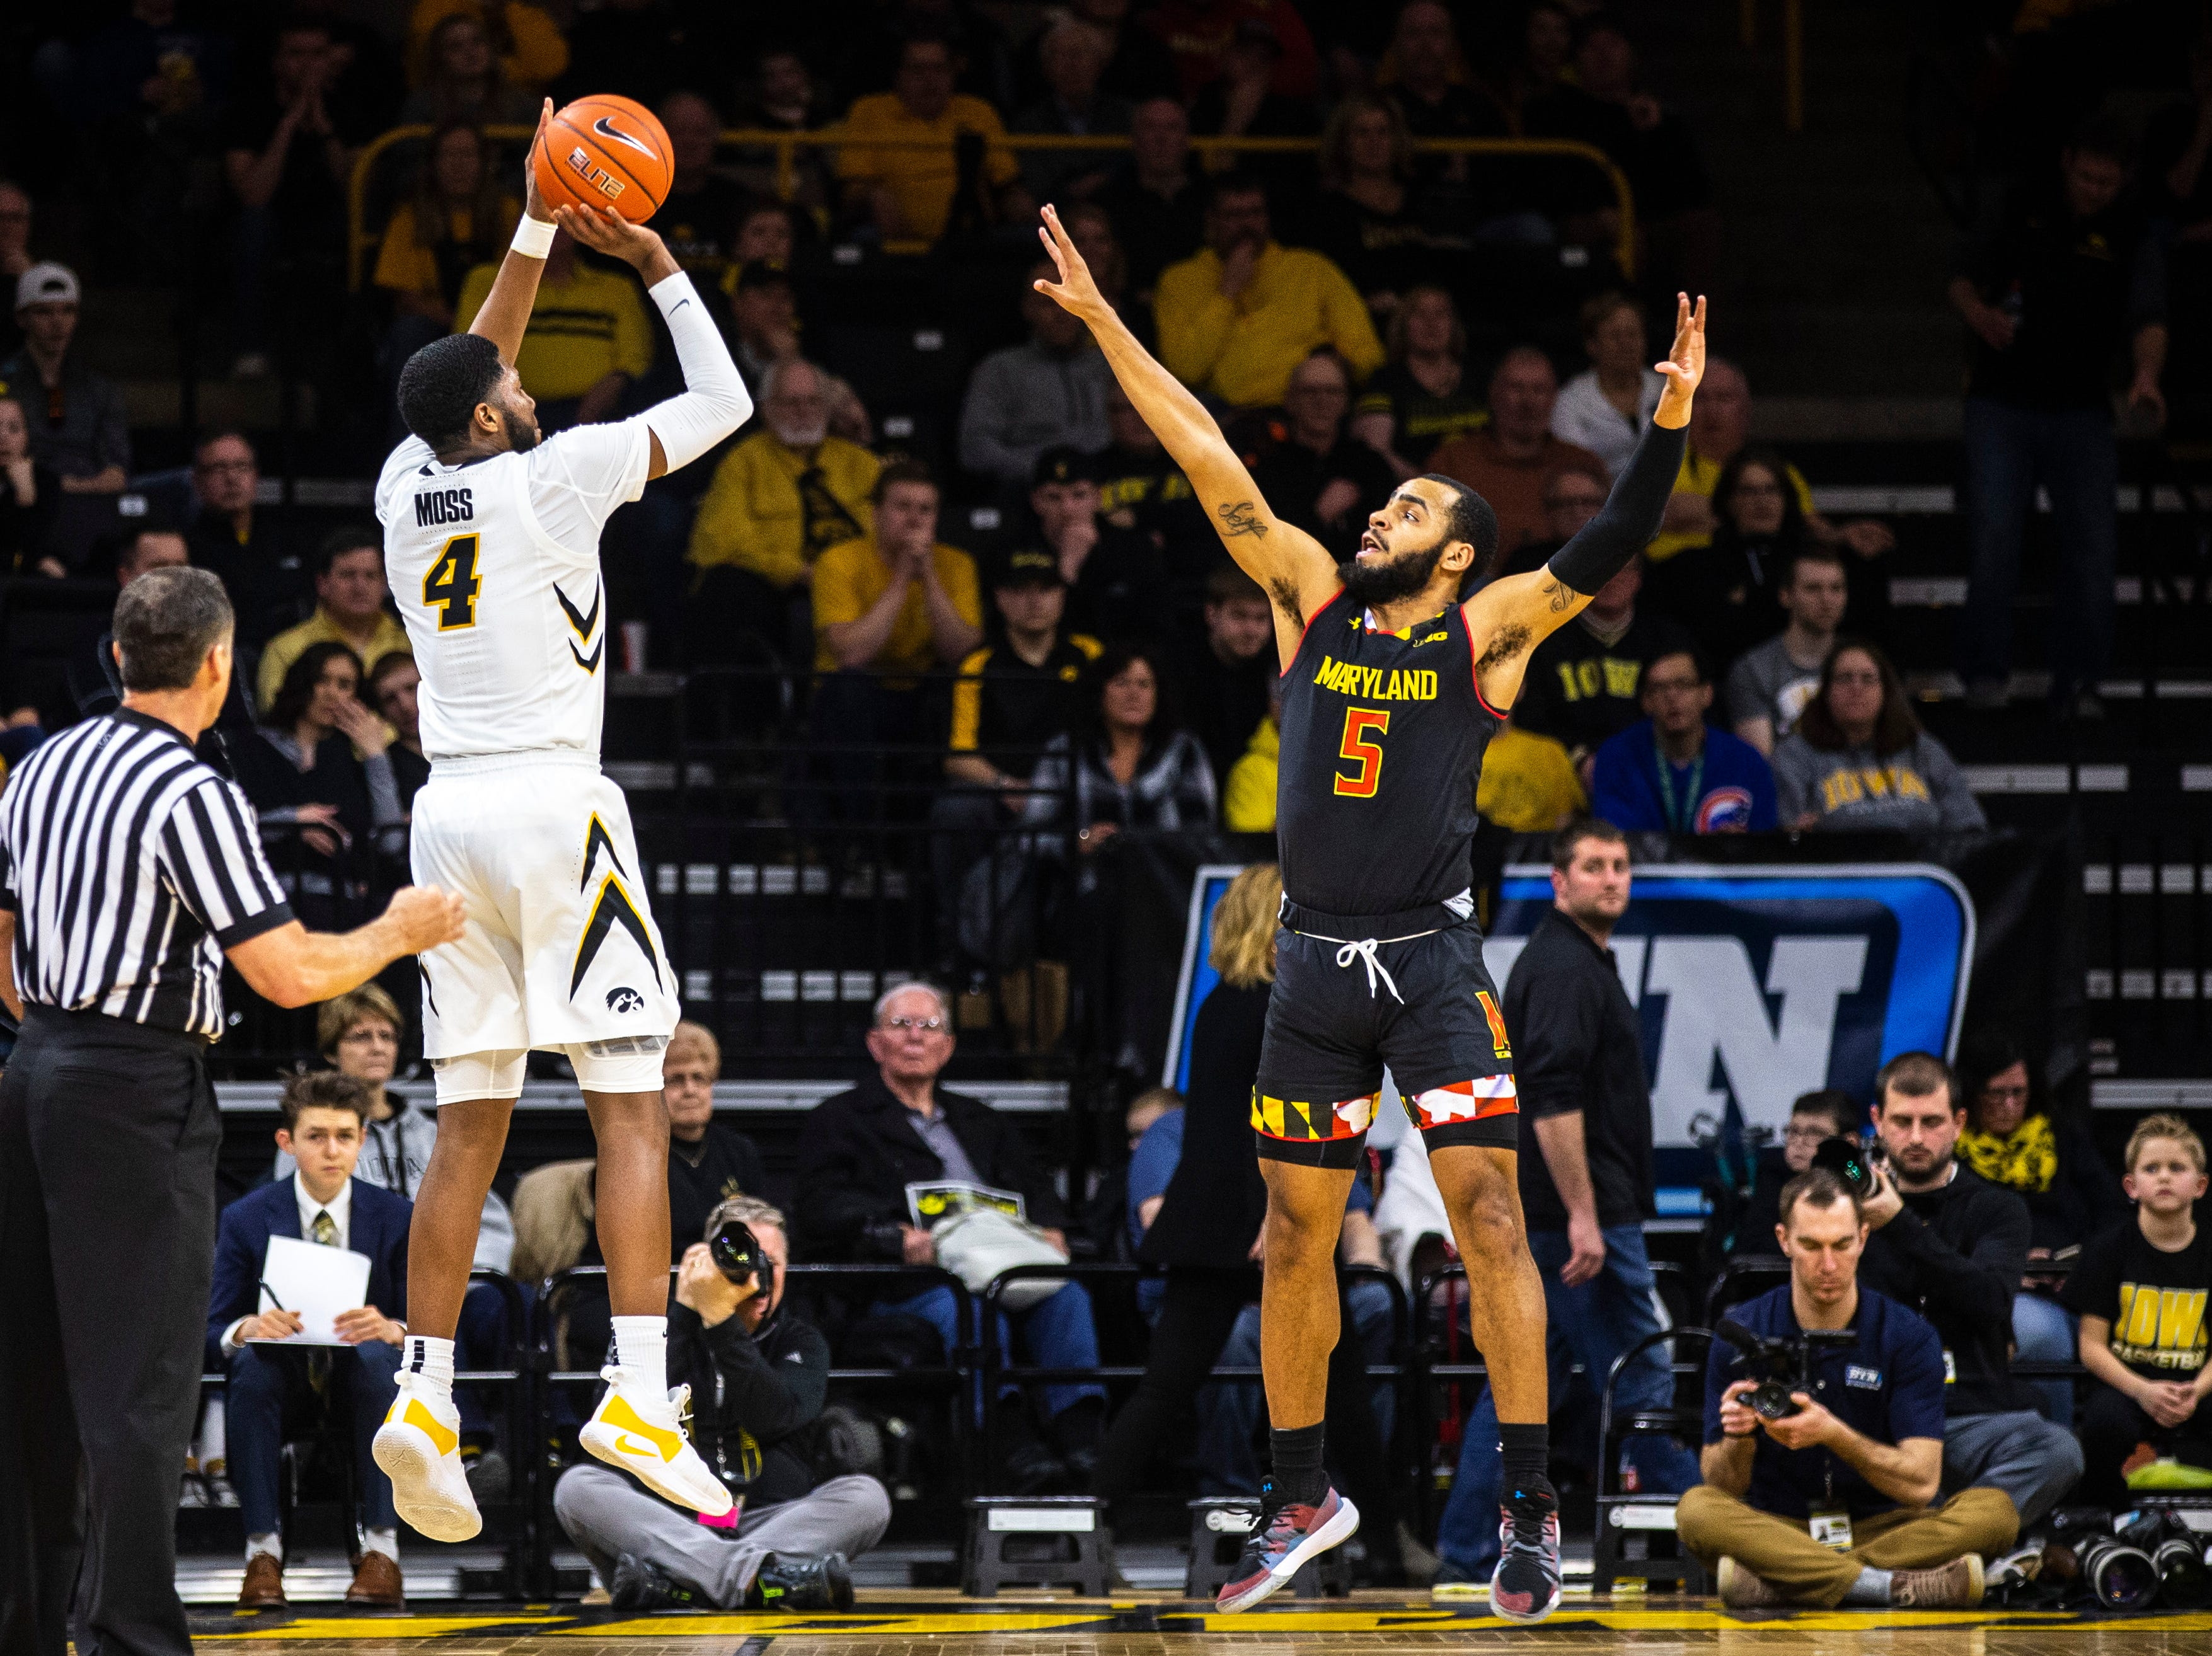 Iowa guard Isaiah Moss (4) rises to shoot a 3-point basket while Maryland guard Eric Ayala (5) defends during a NCAA Big Ten Conference men's basketball game on Tuesday, Feb. 19, 2019 at Carver-Hawkeye Arena in Iowa City, Iowa.